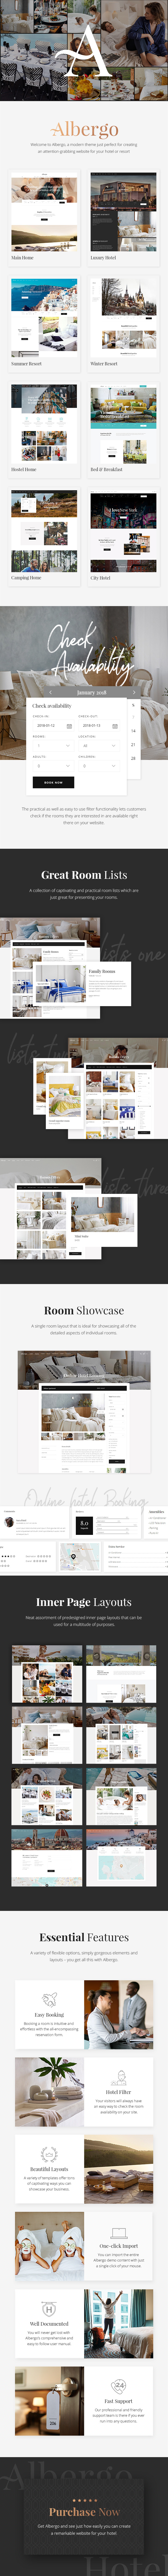 Albergo – A Modern Hotel and Accommodation Booking Theme (Travel) 01a